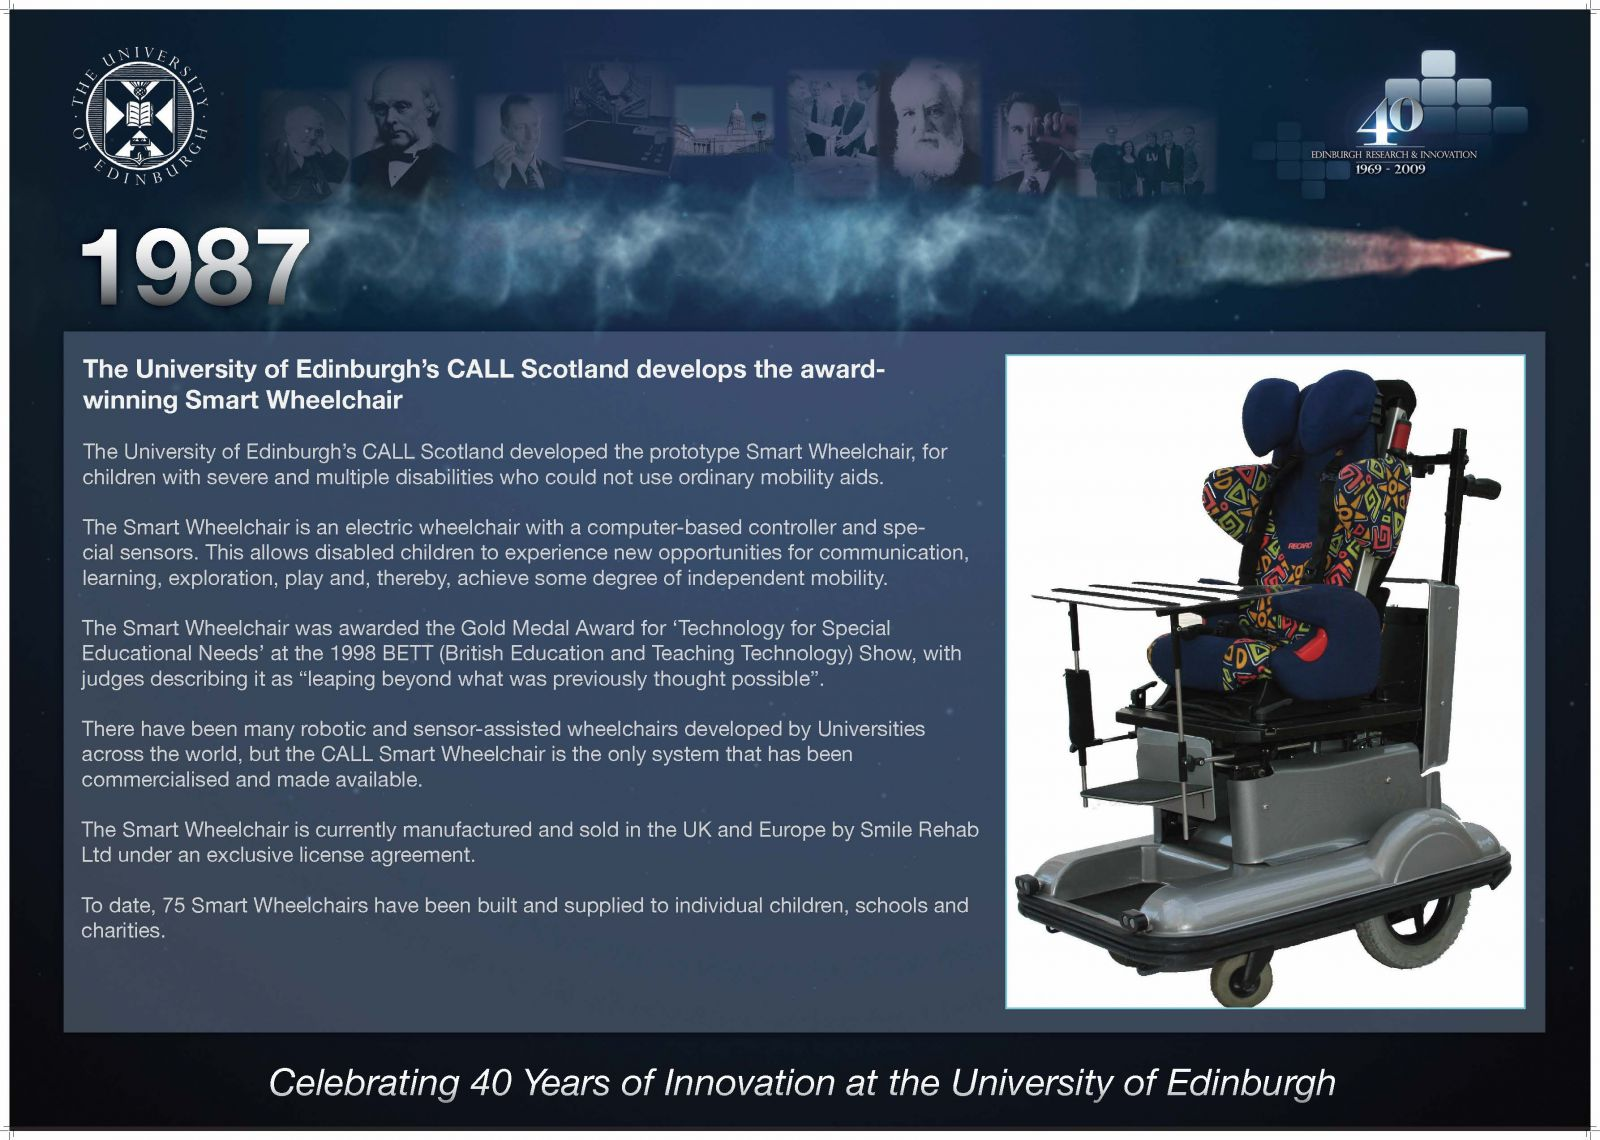 """1987 The University of Edinburgh's CALL Scotland develops the award-winning Smart Wheelchair The University of Edinburgh's CALL Scotland developed the prototype Smart Wheelchair, for children with severe and multiple disabilities who could not use ordinary mobility aids. The Smart Wheelchair is an electric wheelchair with a computer-based controller and special sensors. This allows disabled children to experience new opportunities for communication, learning, exploration, play and, thereby, achieve some degree of independent mobility. The Smart Wheelchair was awarded the Gold Medal Award for 'Technology for Special Educational Needs' at the 1998 BETT (British Education and Teaching Technology) Show, with judges describing it as """"leaping beyond what was previously thought possible"""". There have been many robotic and sensor-assisted wheelchairs developed by Universities across the world, but the CALL Smart Wheelchair is the only system that has been commercialised and made available. The Smart Wheelchair is currently manufactured and sold in the UK and Europe by Smile Rehab Ltd under an exclusive license agreement. To date, 75 Smart Wheelchairs have been built and supplied to individual children, schools and charities."""